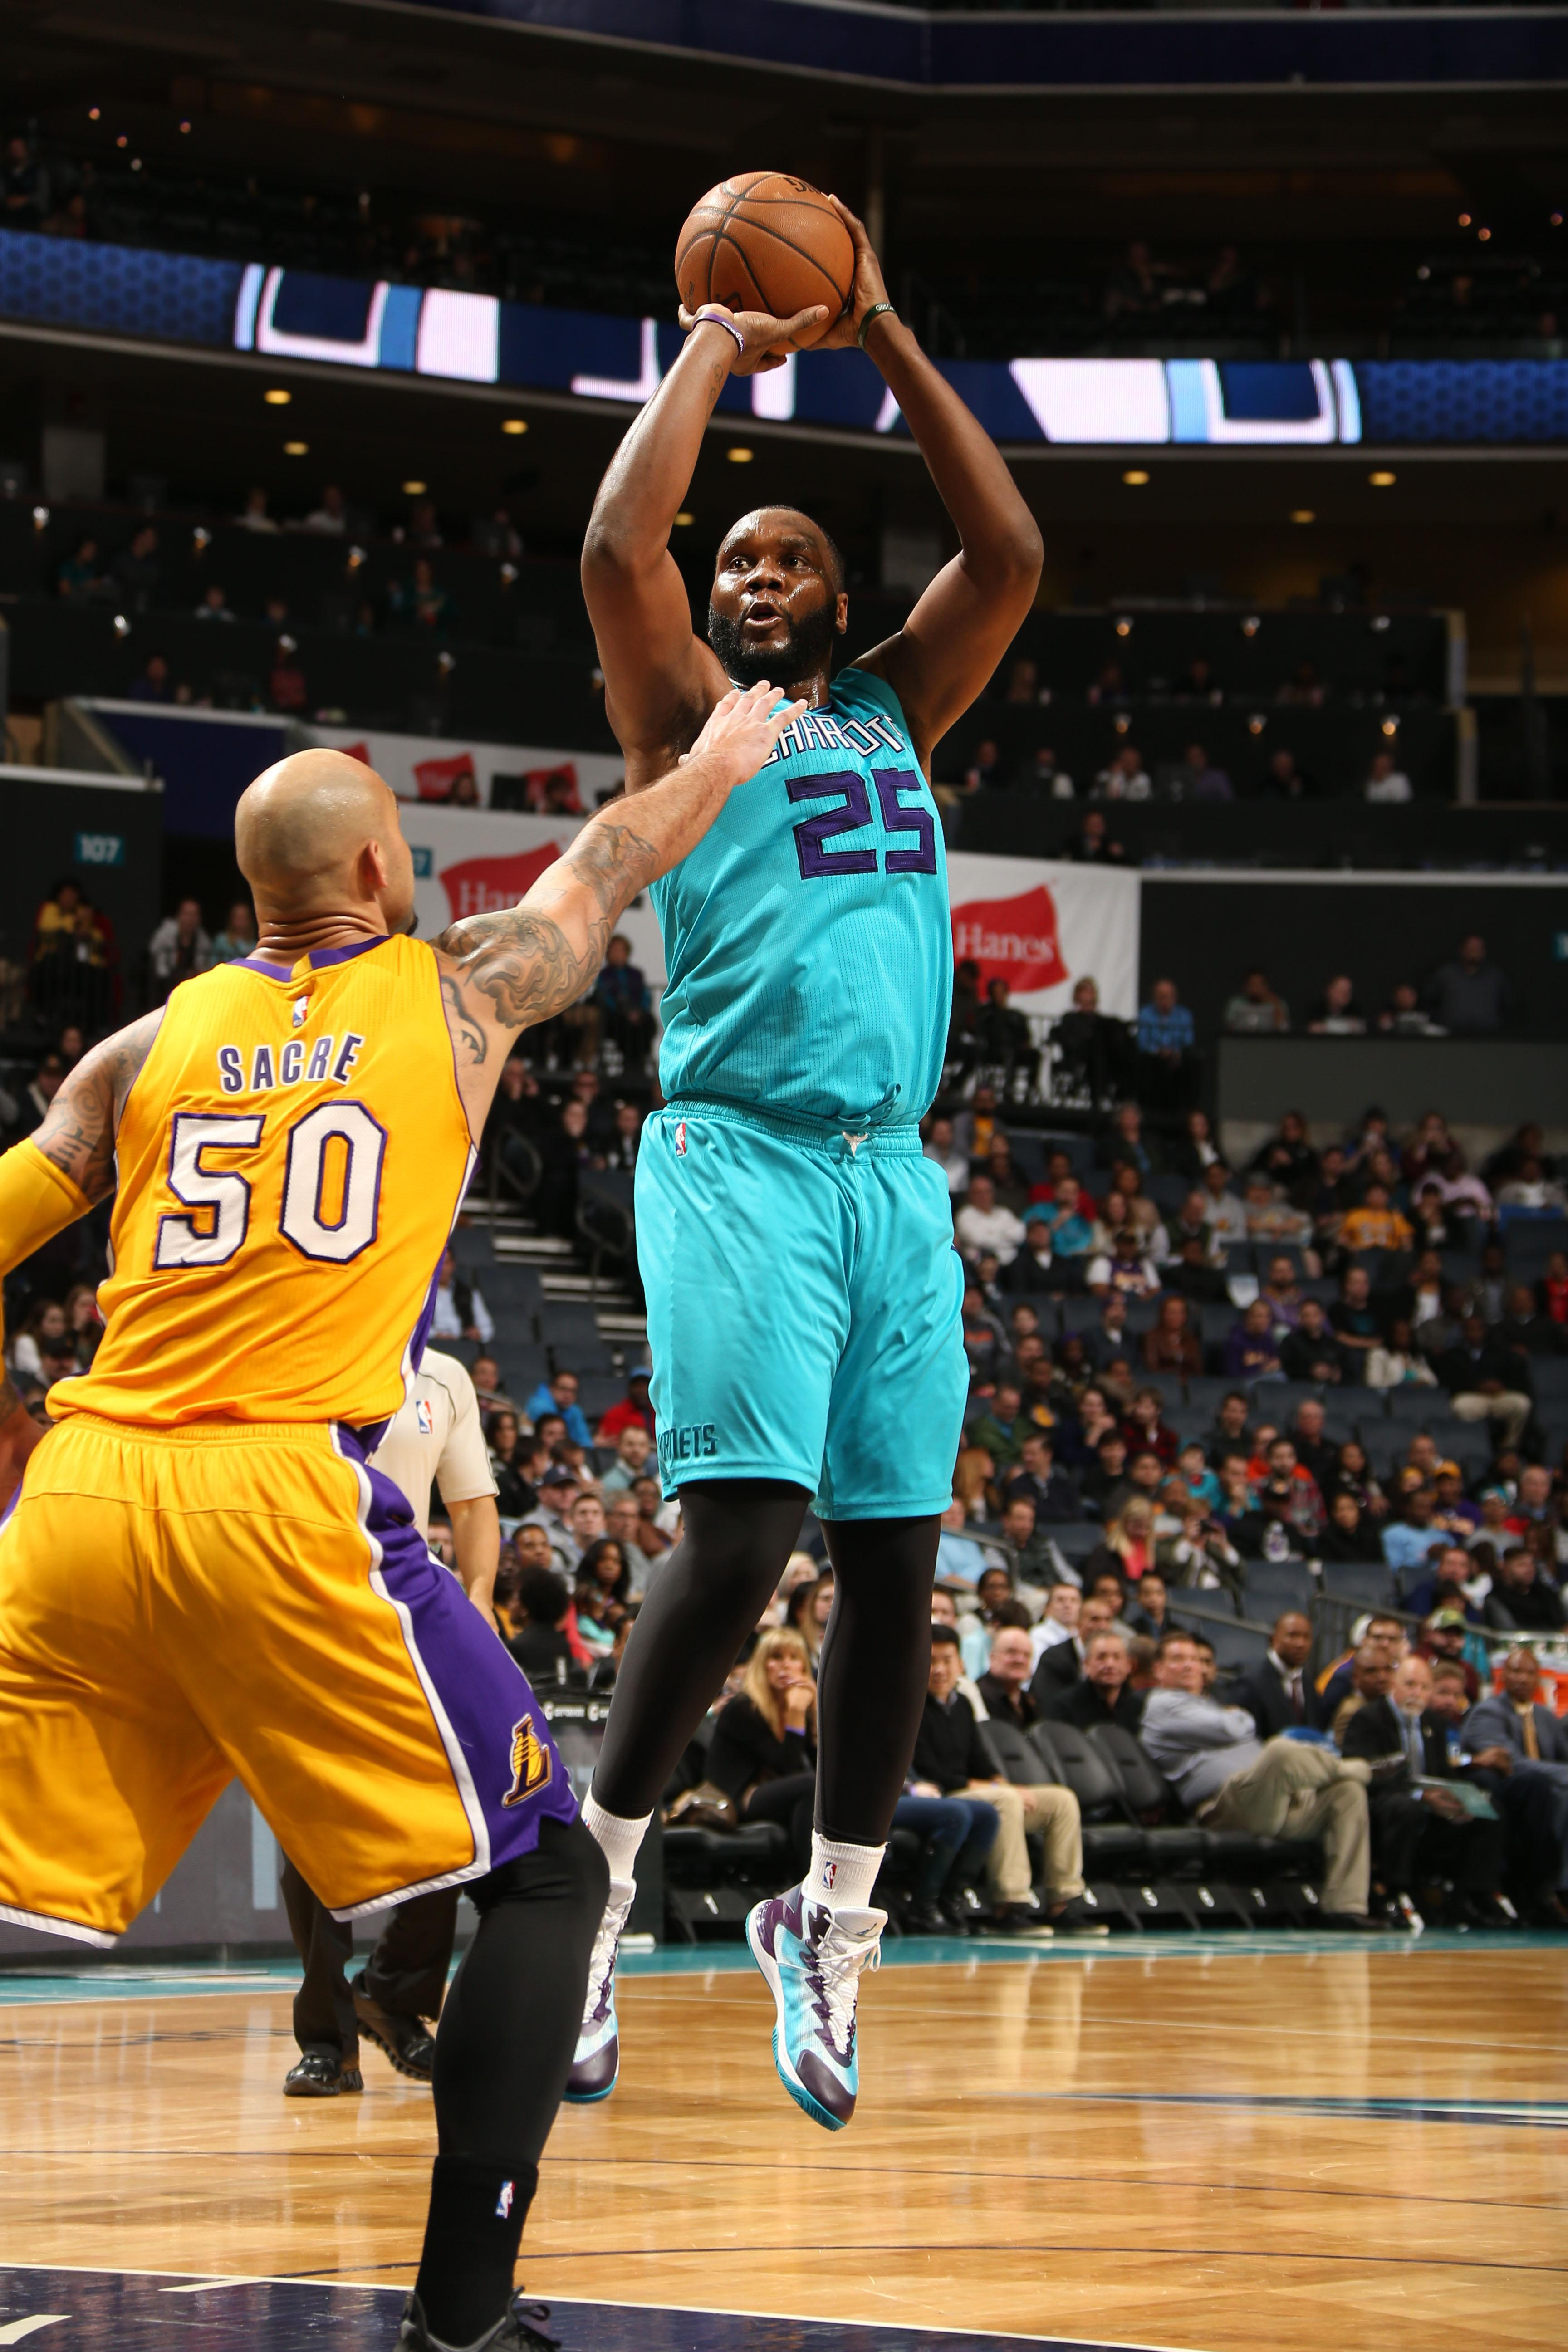 Jefferson, Williams lead Hornets past Lakers 104-103